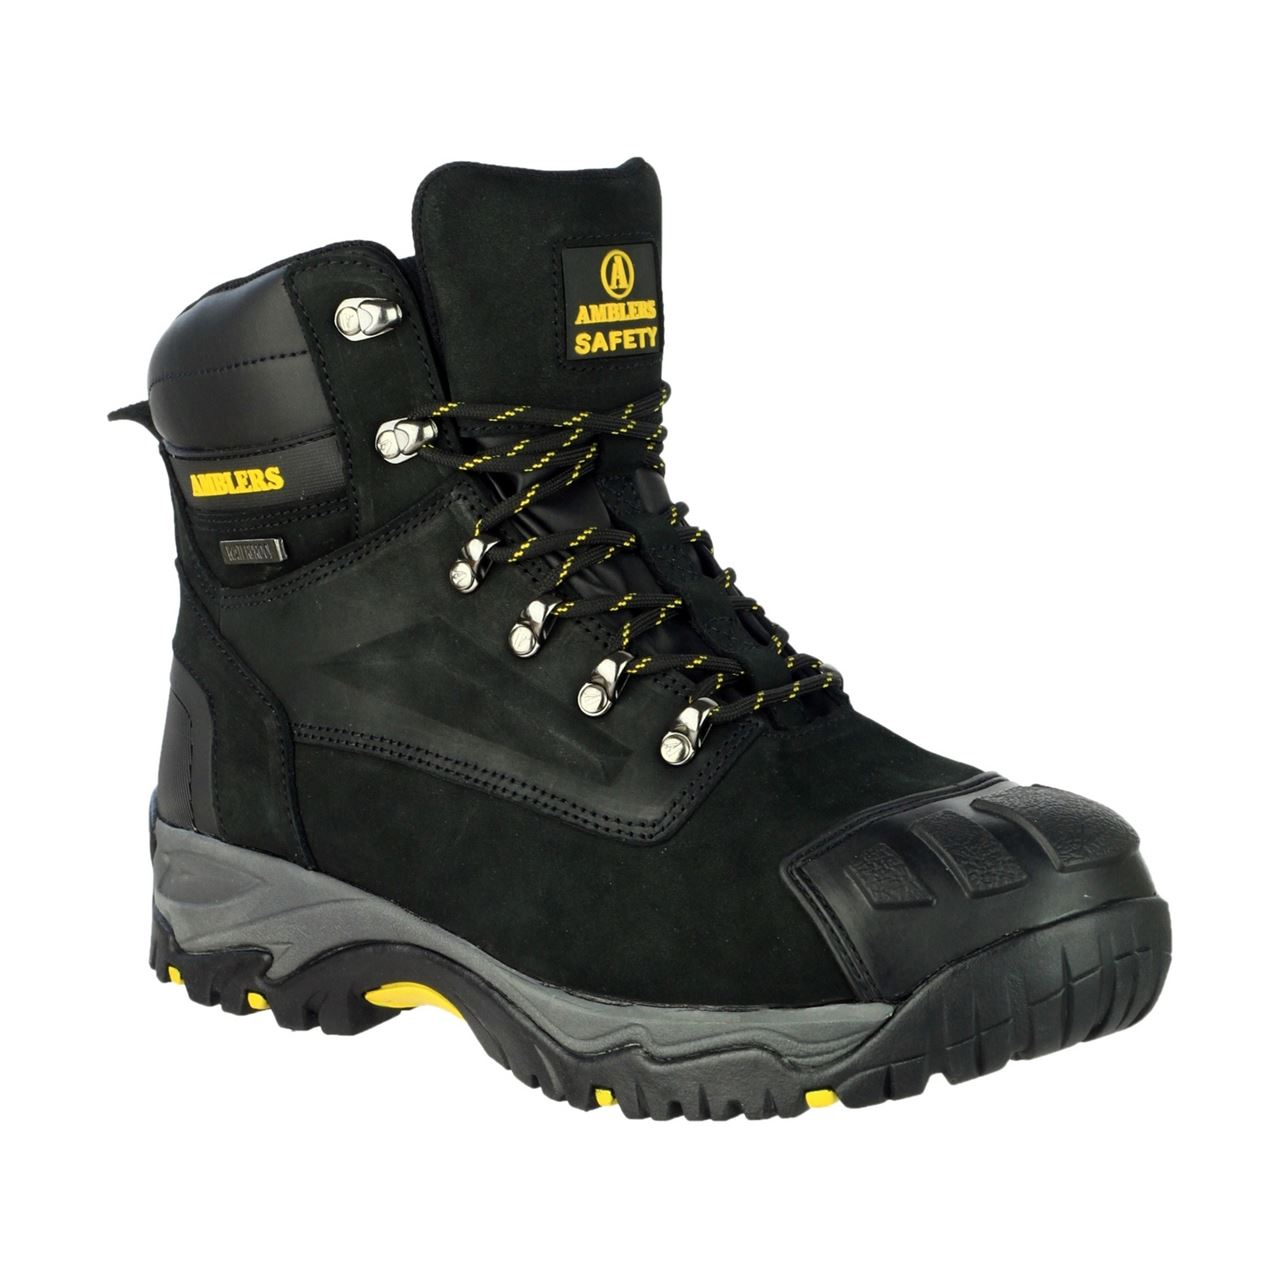 da98f33c4d2 Waterproof Safety Boots